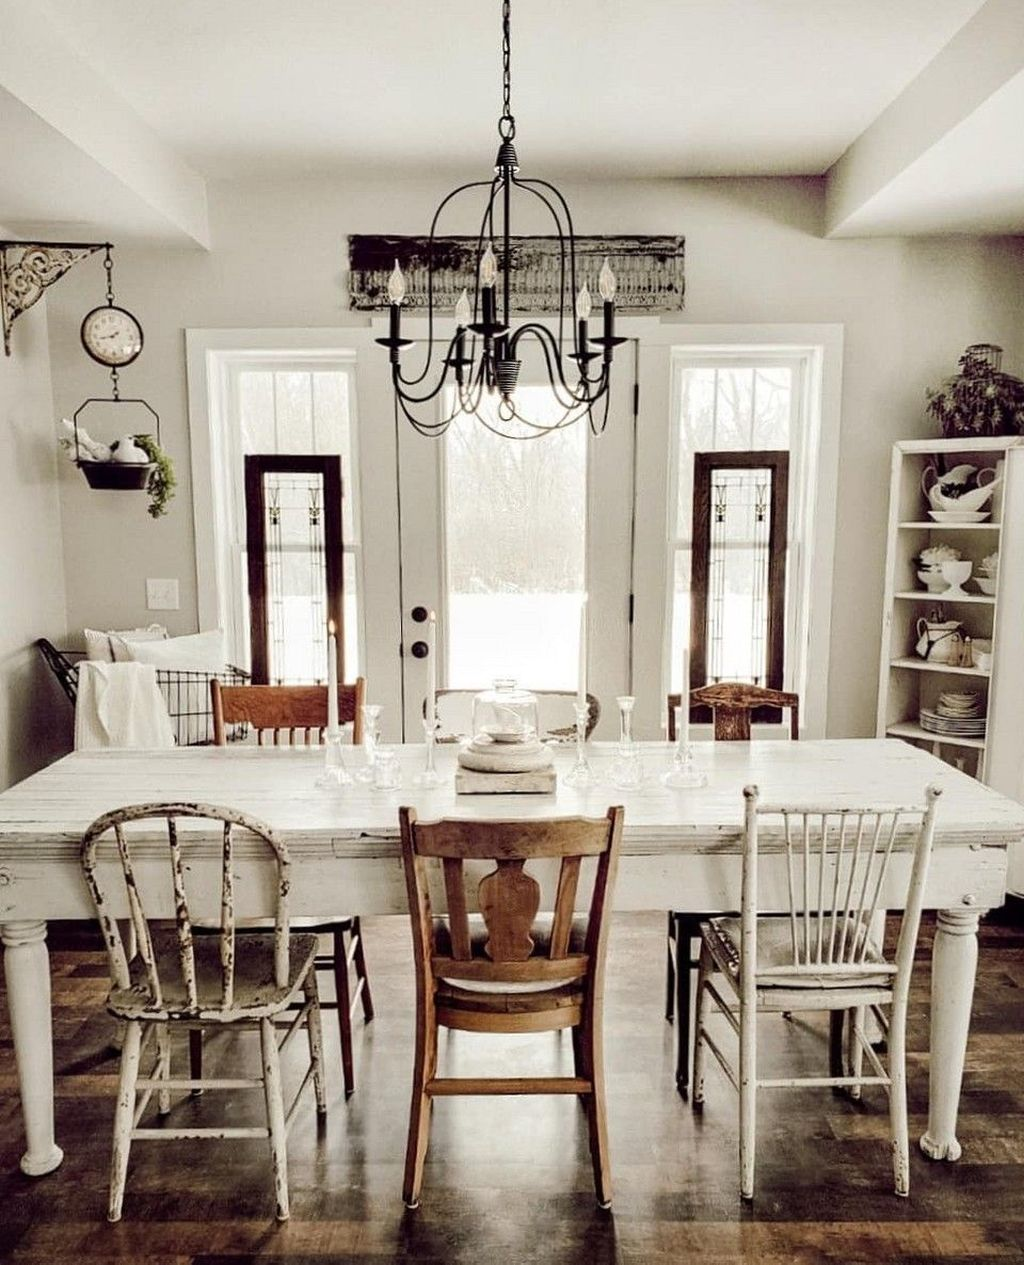 The Best Rustic Dining Room Decoration Ideas 06